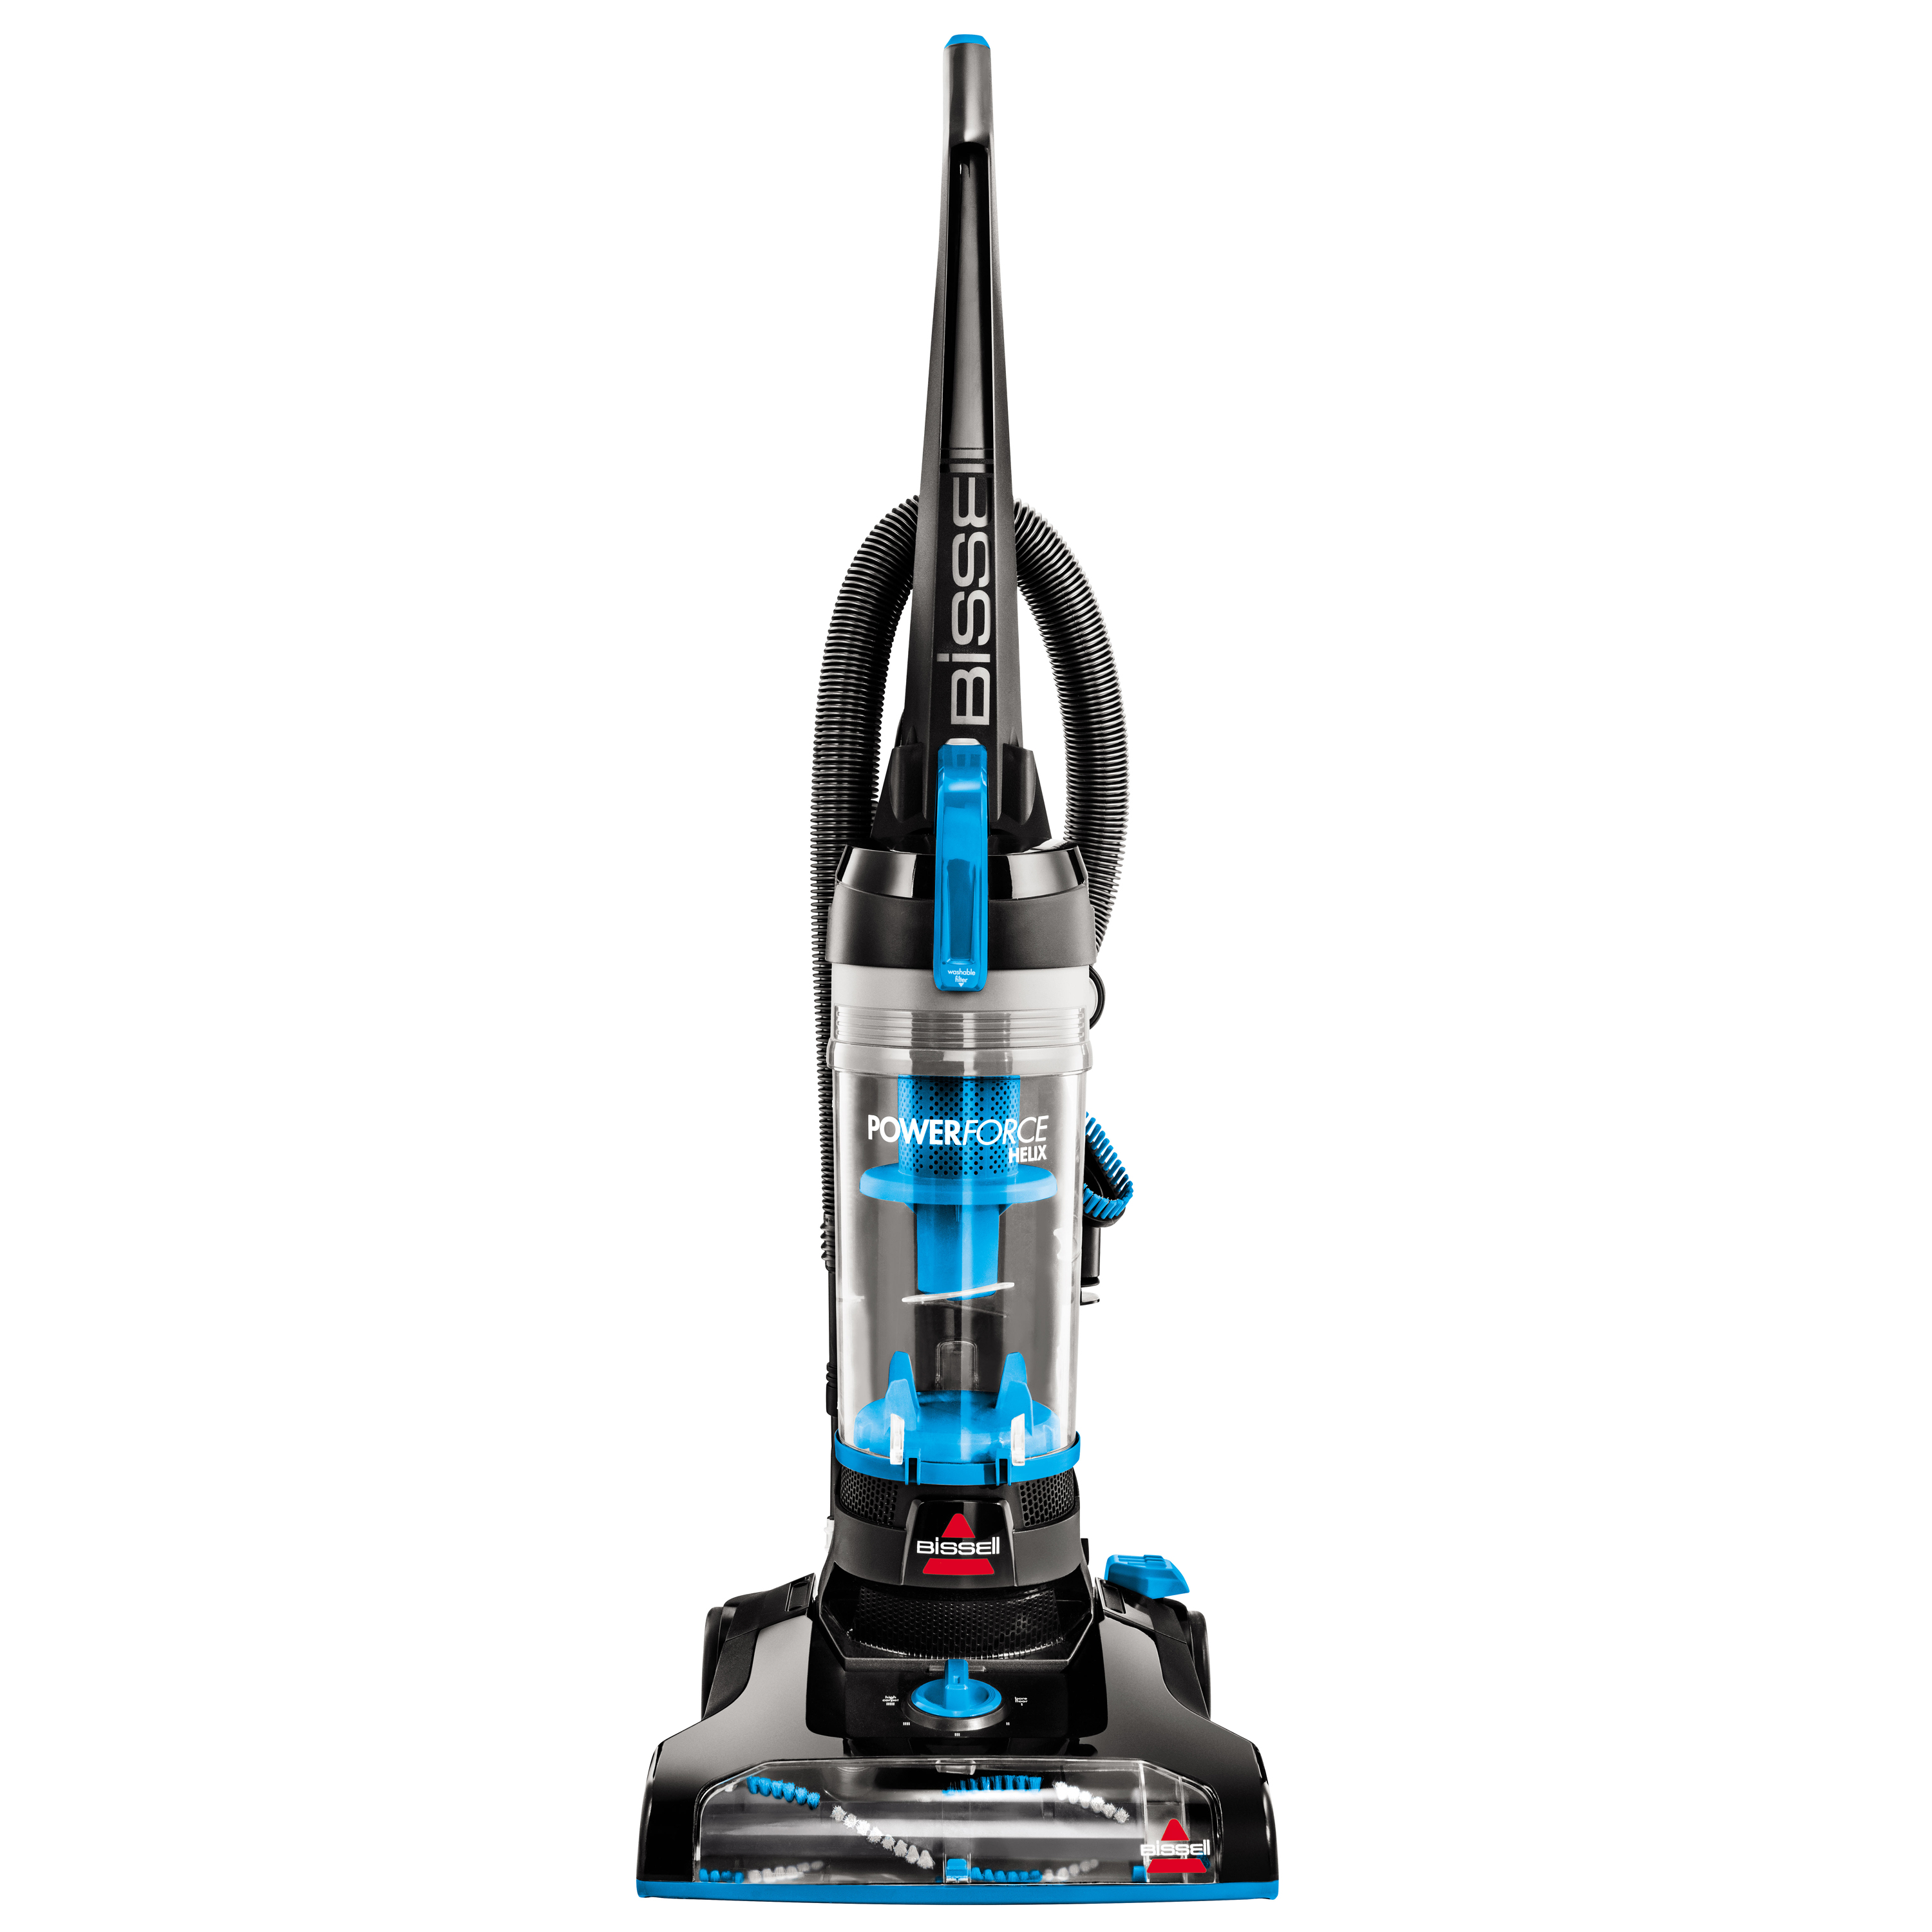 BISSELL PowerForce Helix Bagless Upright Vacuum (new and improved version  of 1700), 2191 - Walmart.com